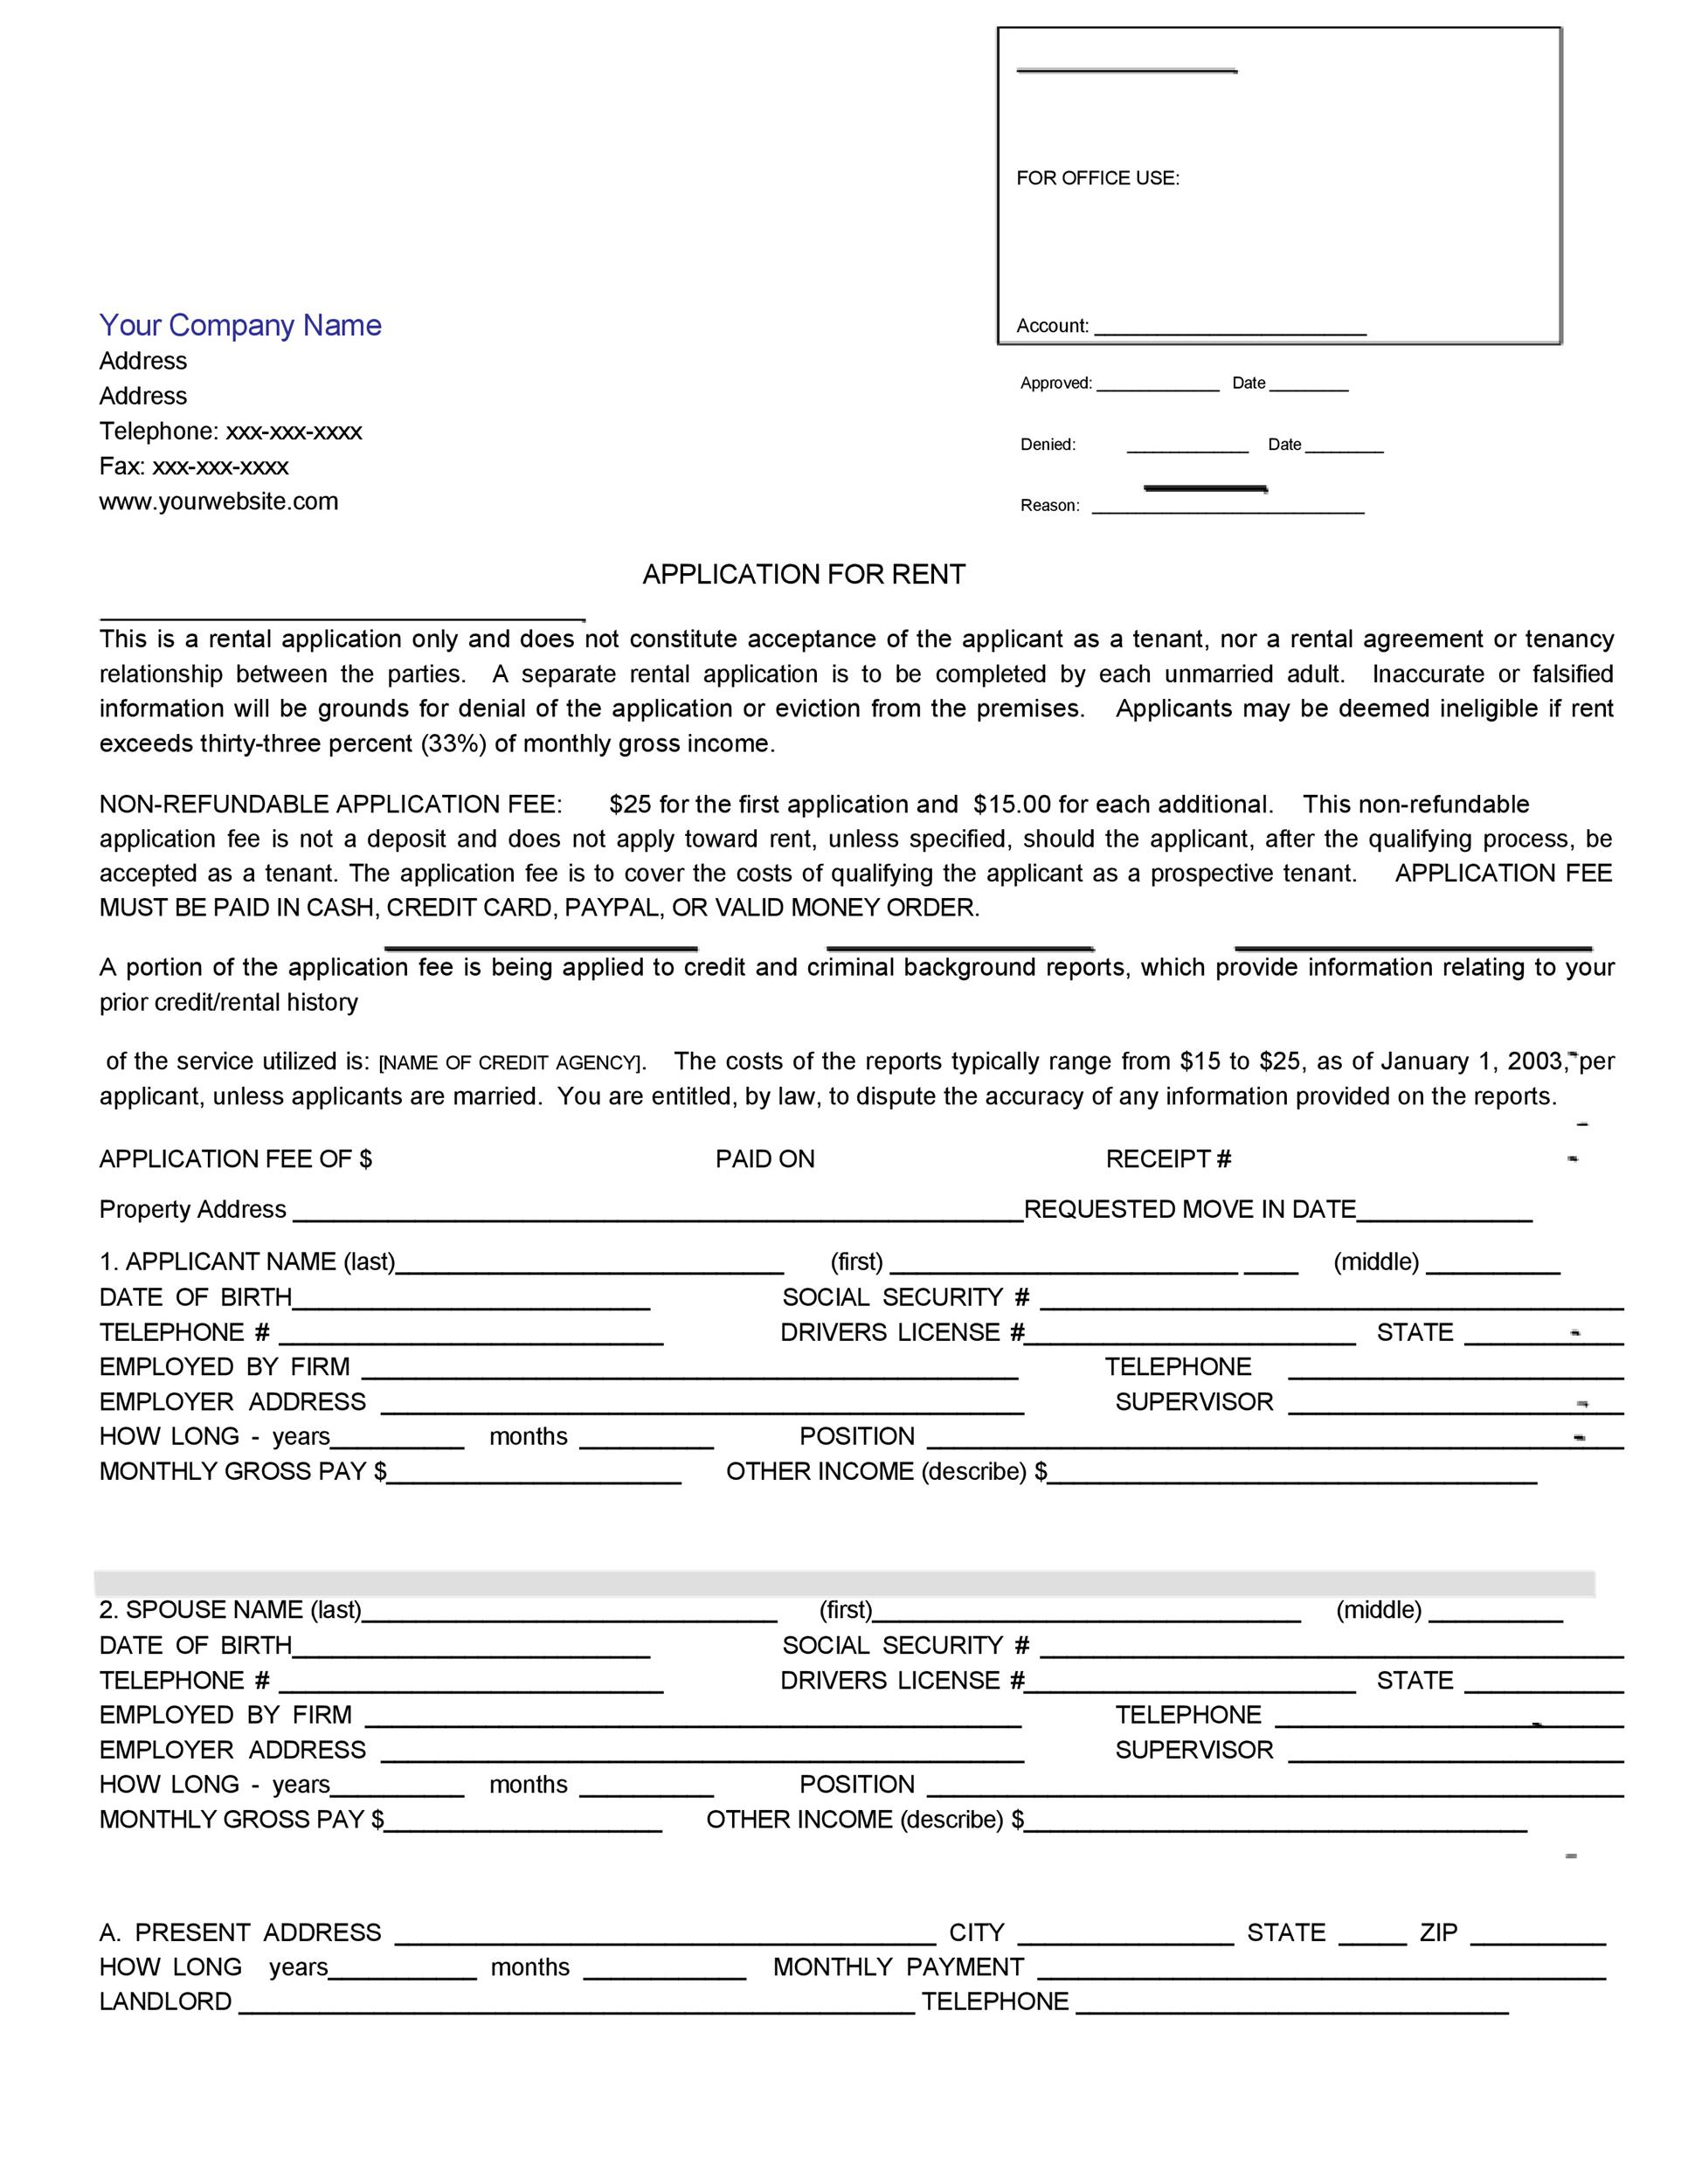 Office Lease Agreement Templates Commercial Lease Agreement – Sample Commercial Lease Agreement Template